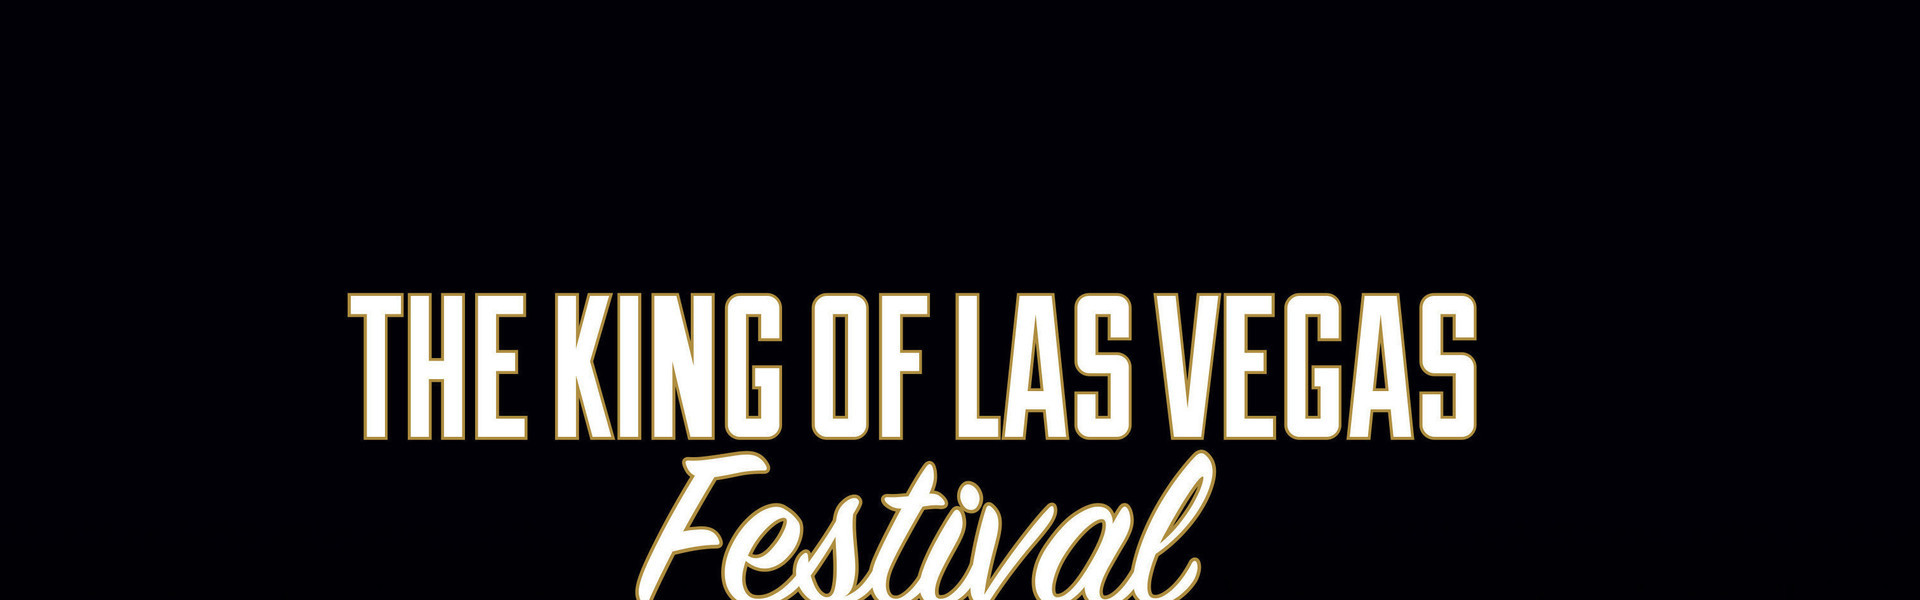 Join us at the premier Las Vegas Elvis Festival - The King of Las Vegas! Come experience the life and music of Elvis Presley in the most authentic, epic and intimate of ways at the same showroom and stage where Elvis Presley performed in Las Vegas, so many years ago!